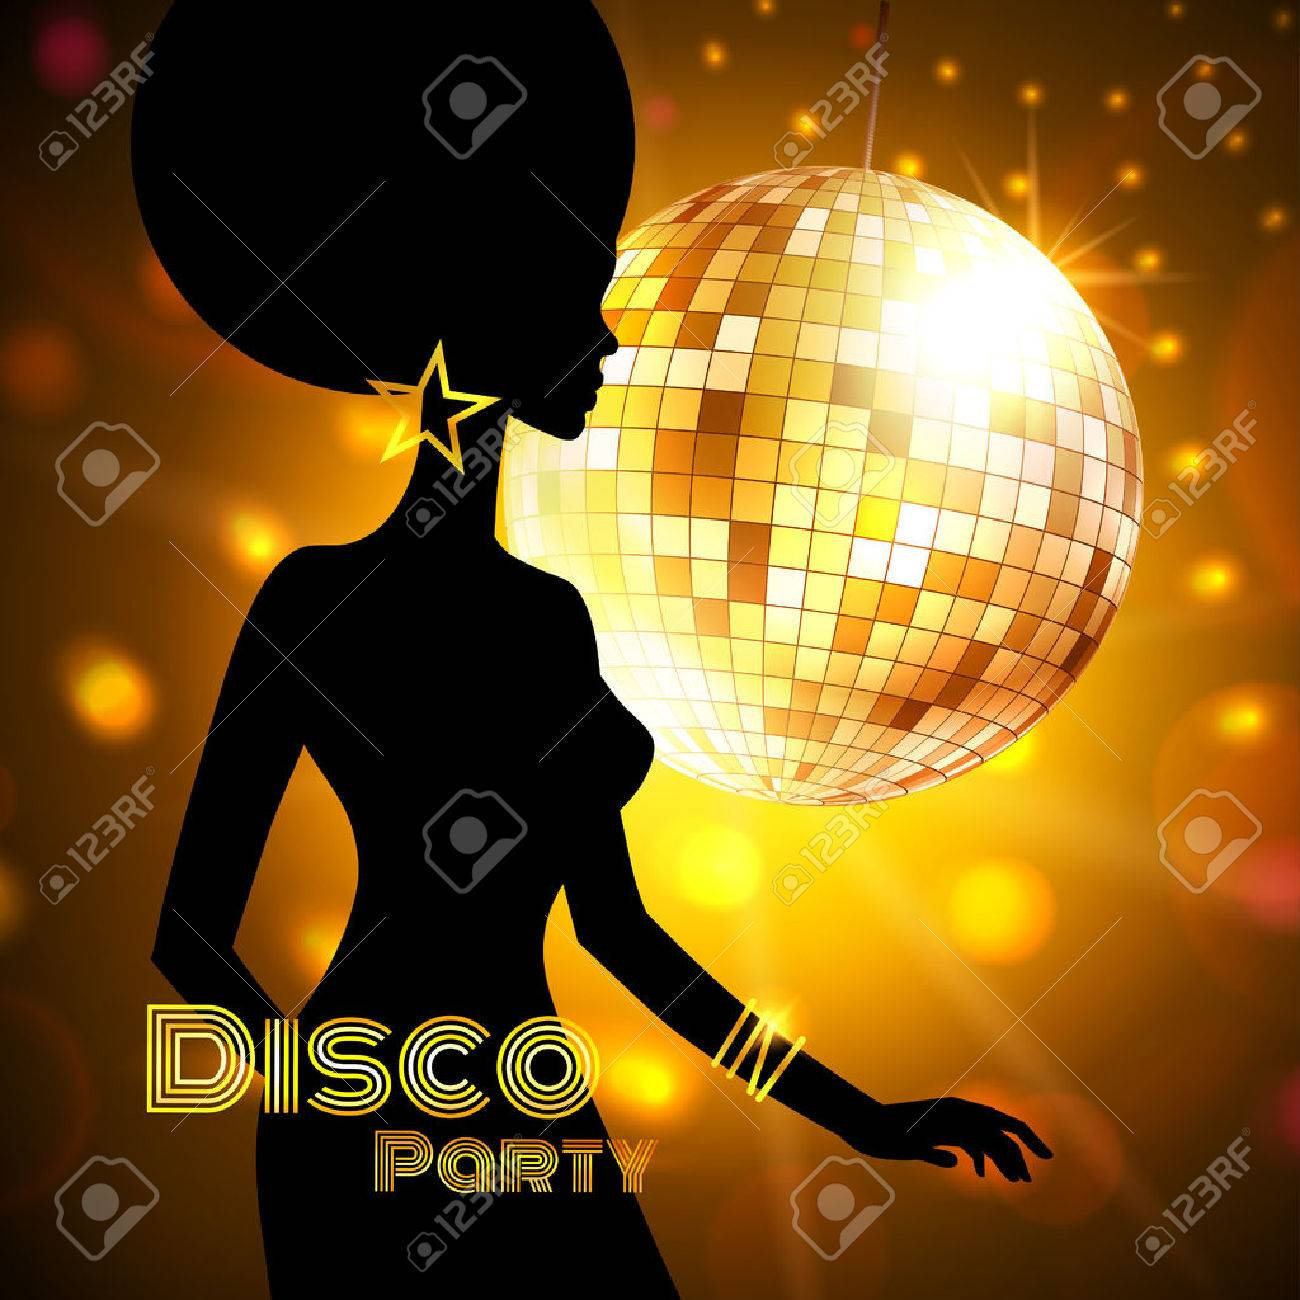 Disco Party invitation template with silhouette of a girl. - 38389510